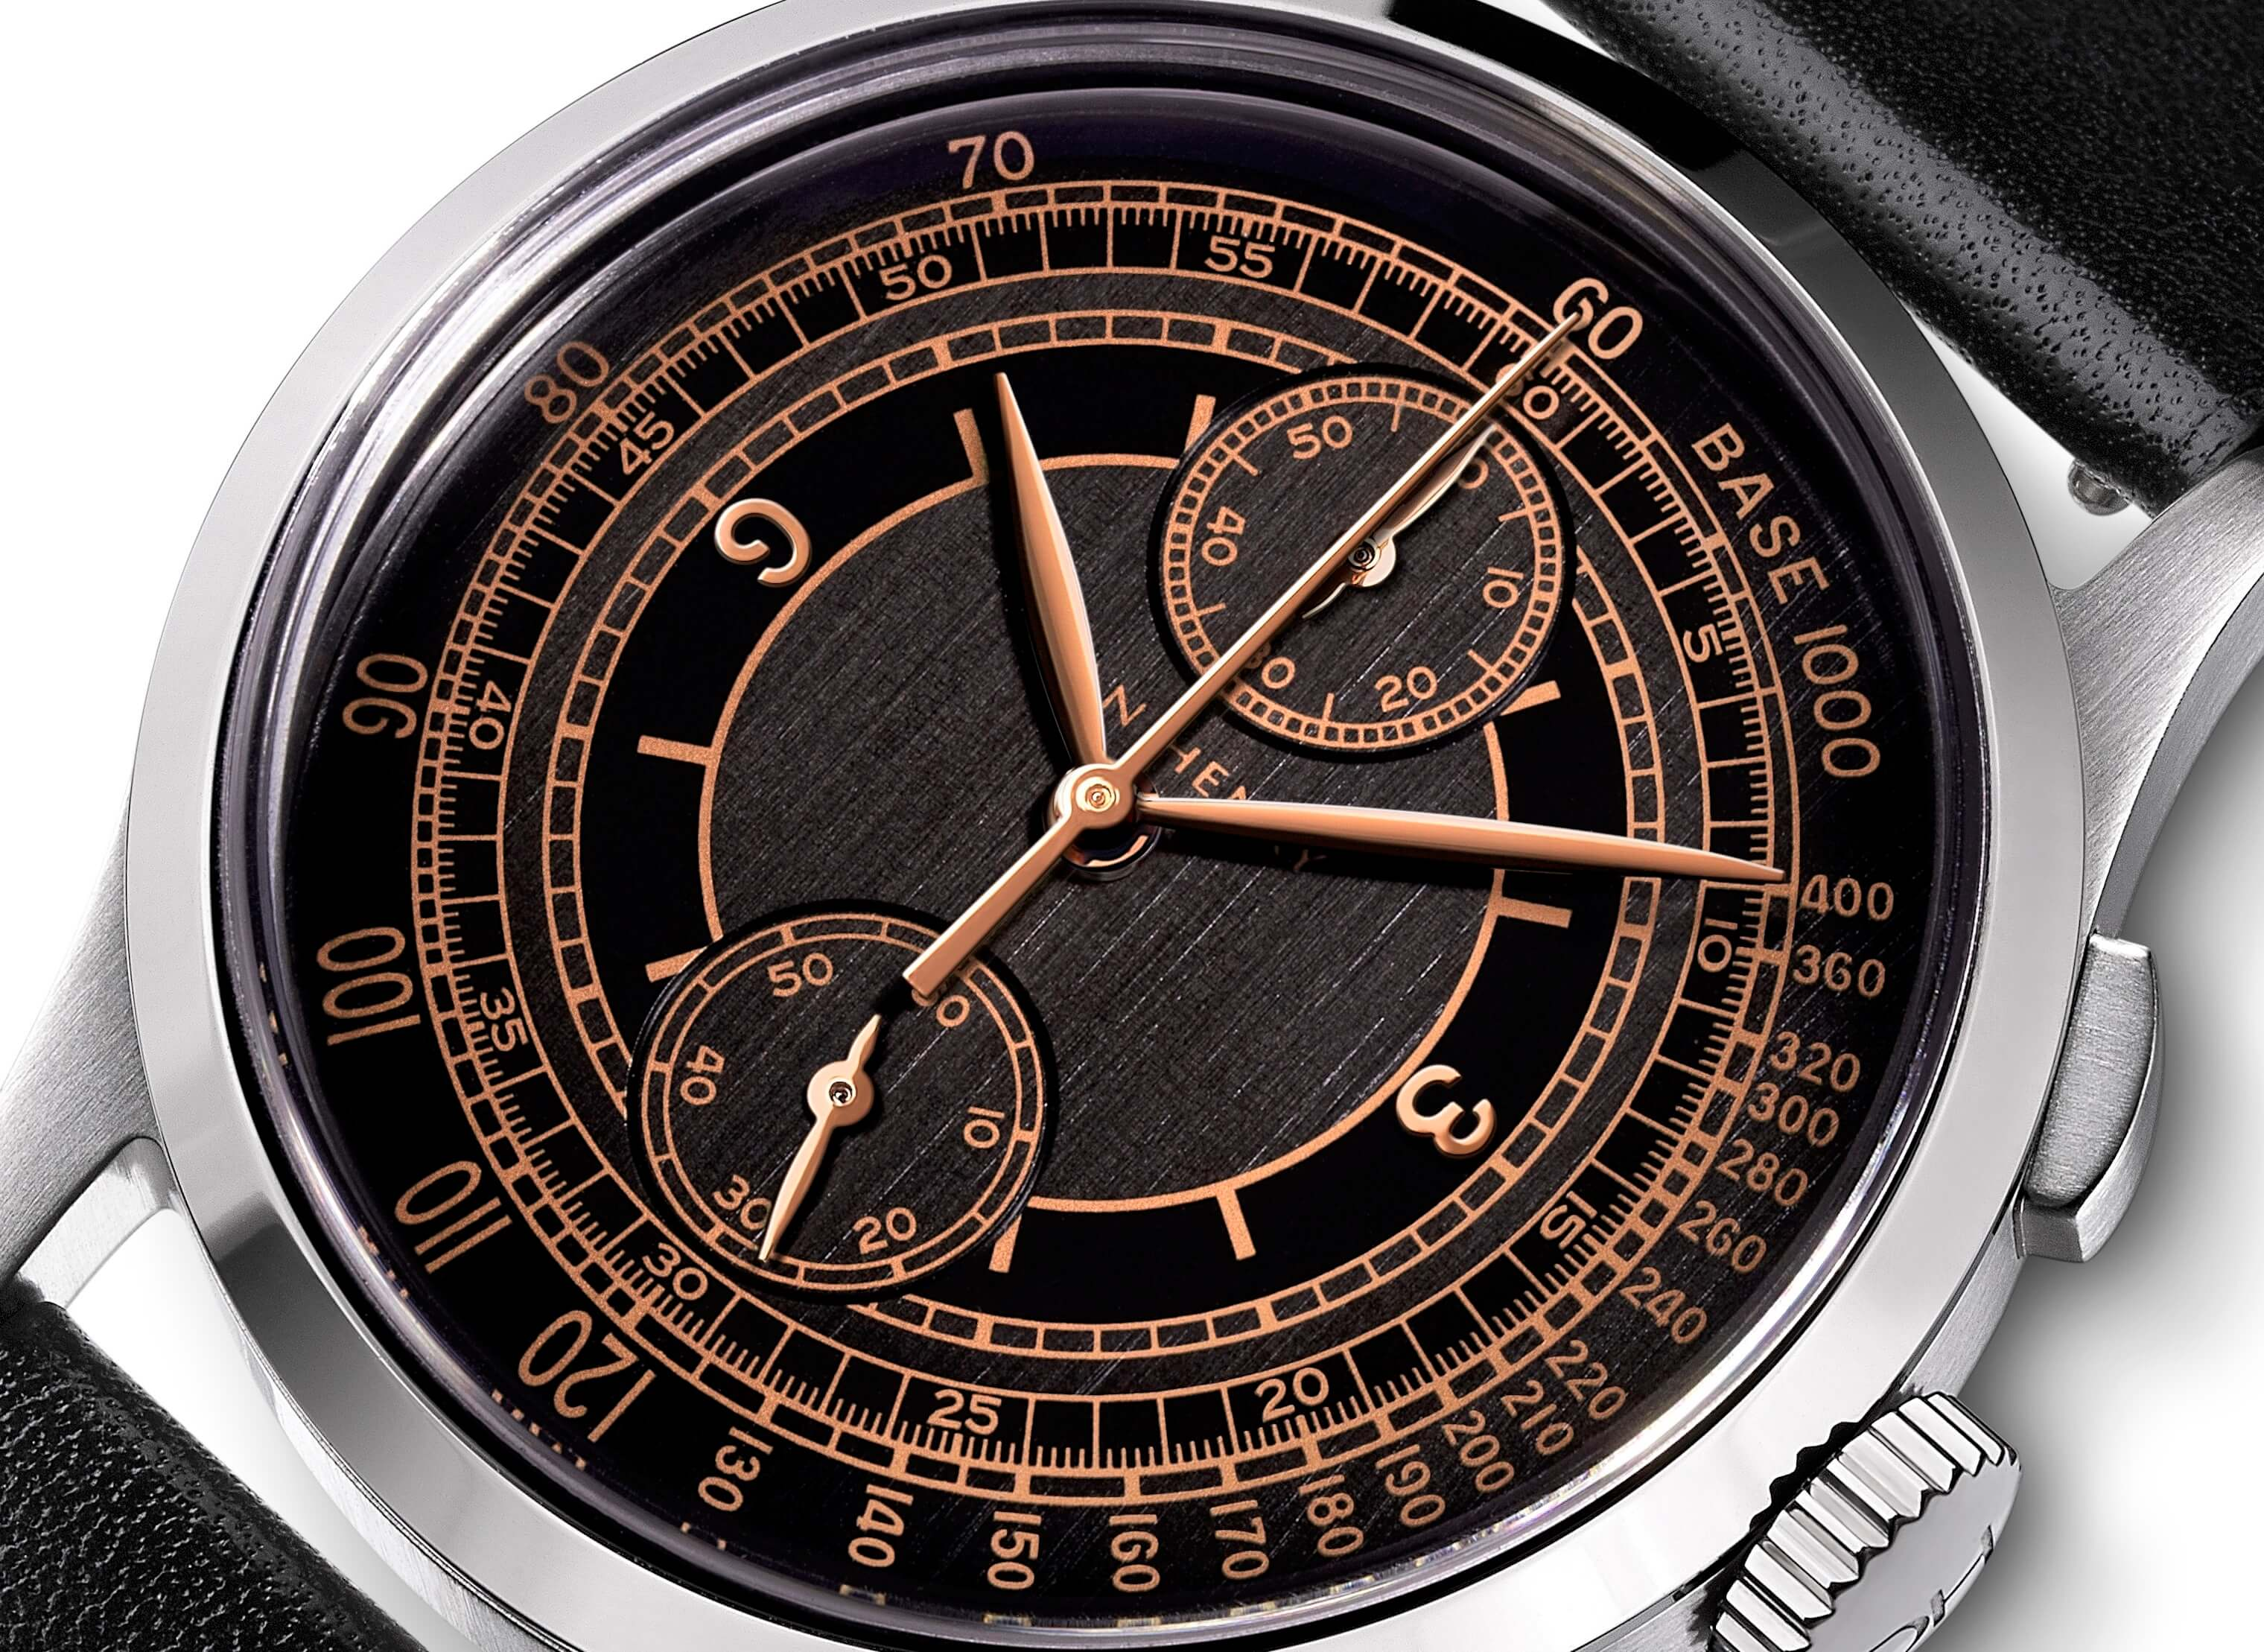 <h3>Dial</h3><p>Black sector dial with Tachymeter, rose gold applied numbers, and Leaf-shaped hands </p>